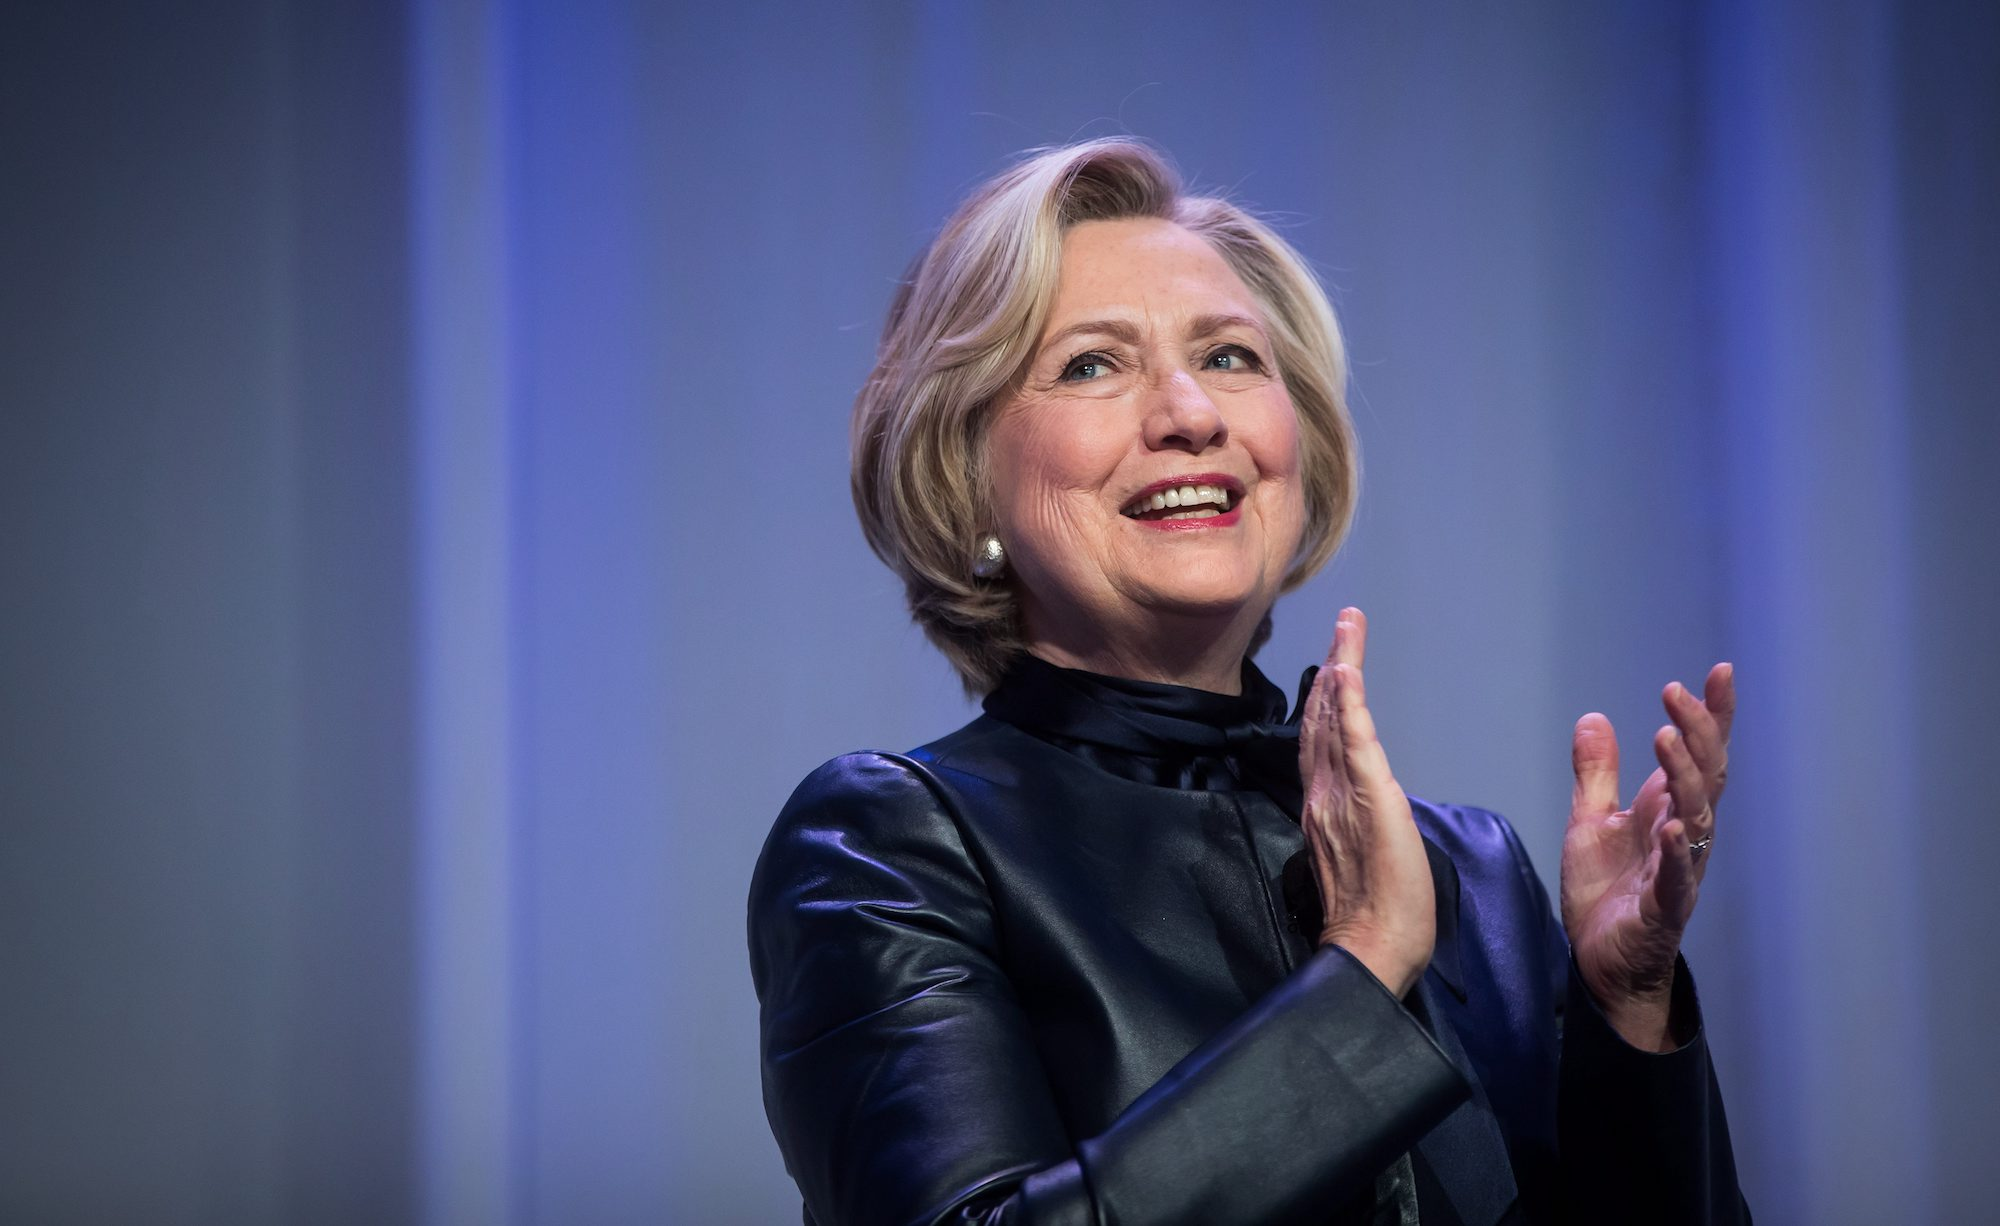 Hillary Clinton is urging women to make their voices heard